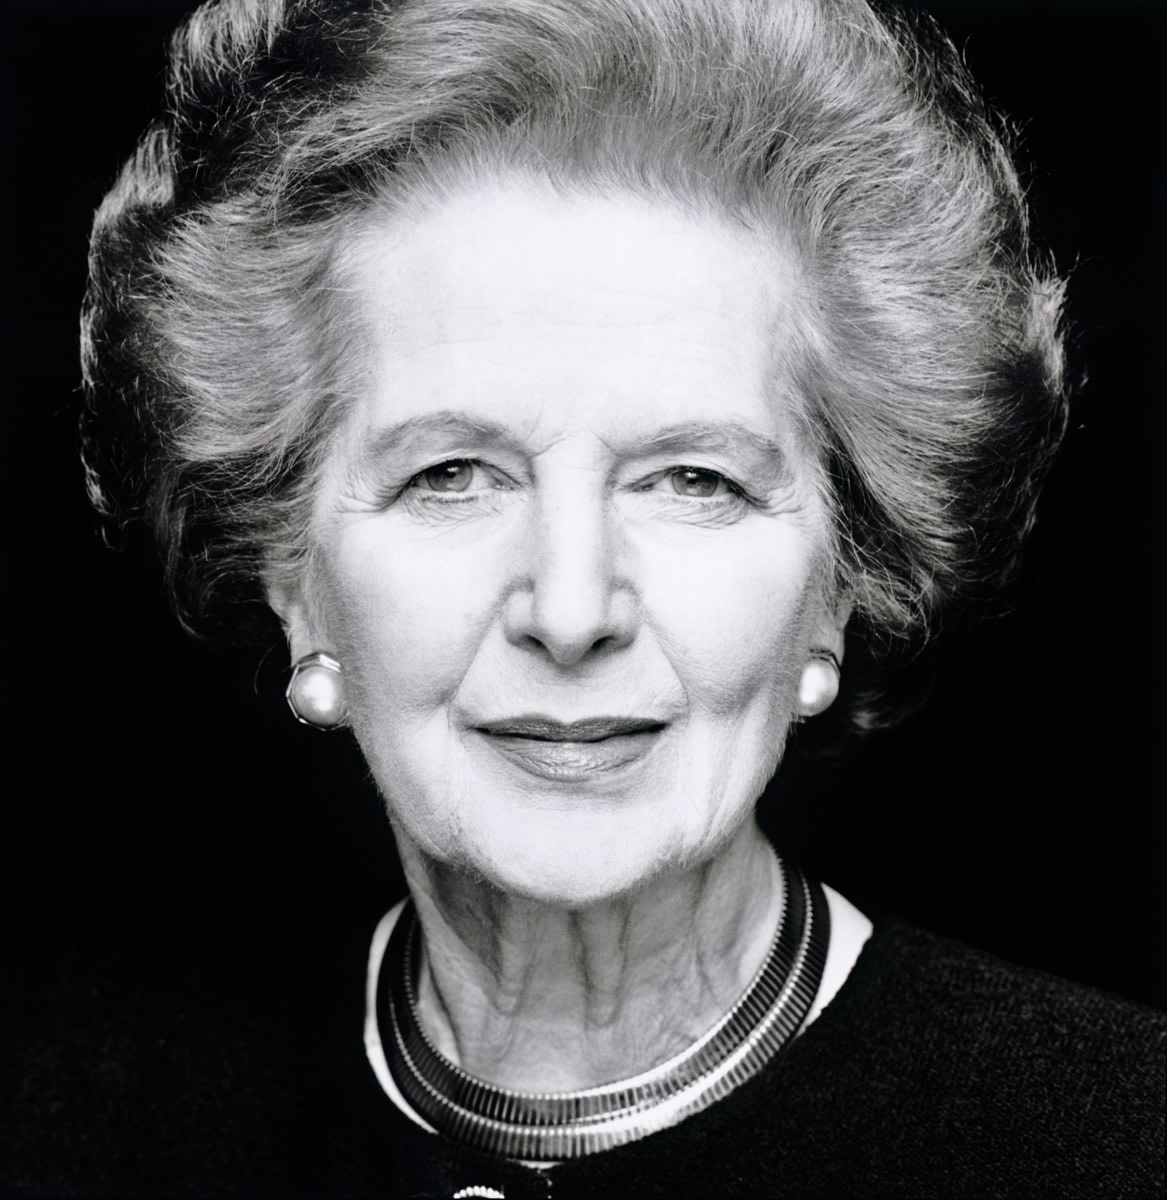 Margaret Thatcher - The Iron Lady  She was the 1st woman to serve as Prime Minister of the United Kingdom and served from 1979-1990. She was also the leader of the Conservative Party from 1975-1990